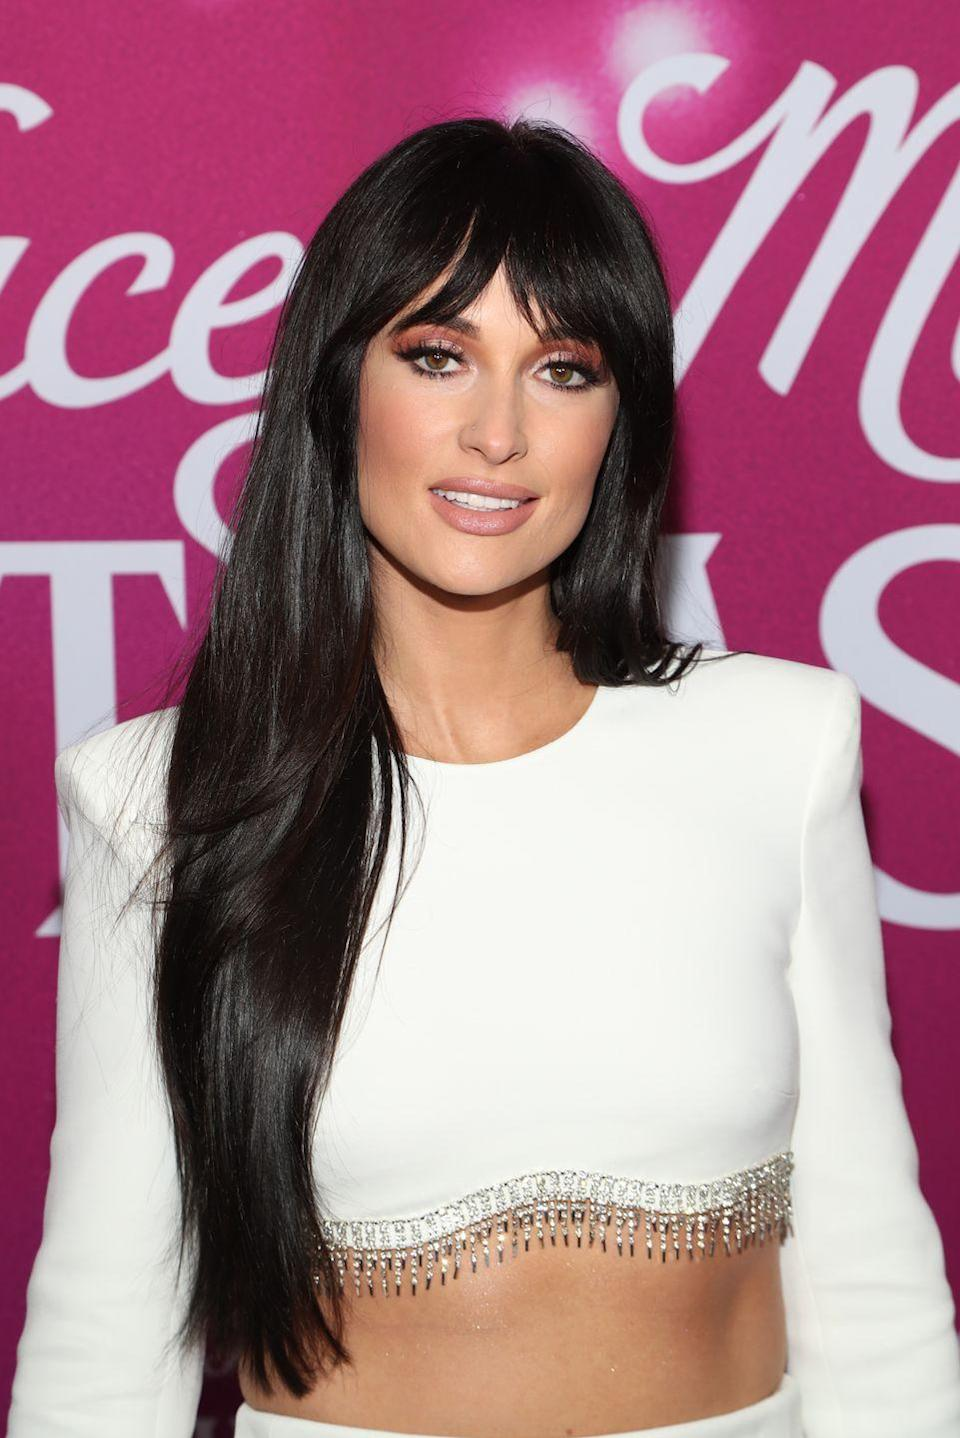 """<p>A fresh set of curtain bangs can add an easy touch of retro-style glam, especially if you have <a href=""""https://www.goodhousekeeping.com/beauty/hair/a34377/how-to-grow-hair-faster-tips/"""" rel=""""nofollow noopener"""" target=""""_blank"""" data-ylk=""""slk:long, sleek hair"""" class=""""link rapid-noclick-resp"""">long, sleek hair</a> like Kacey Musgraves.</p>"""